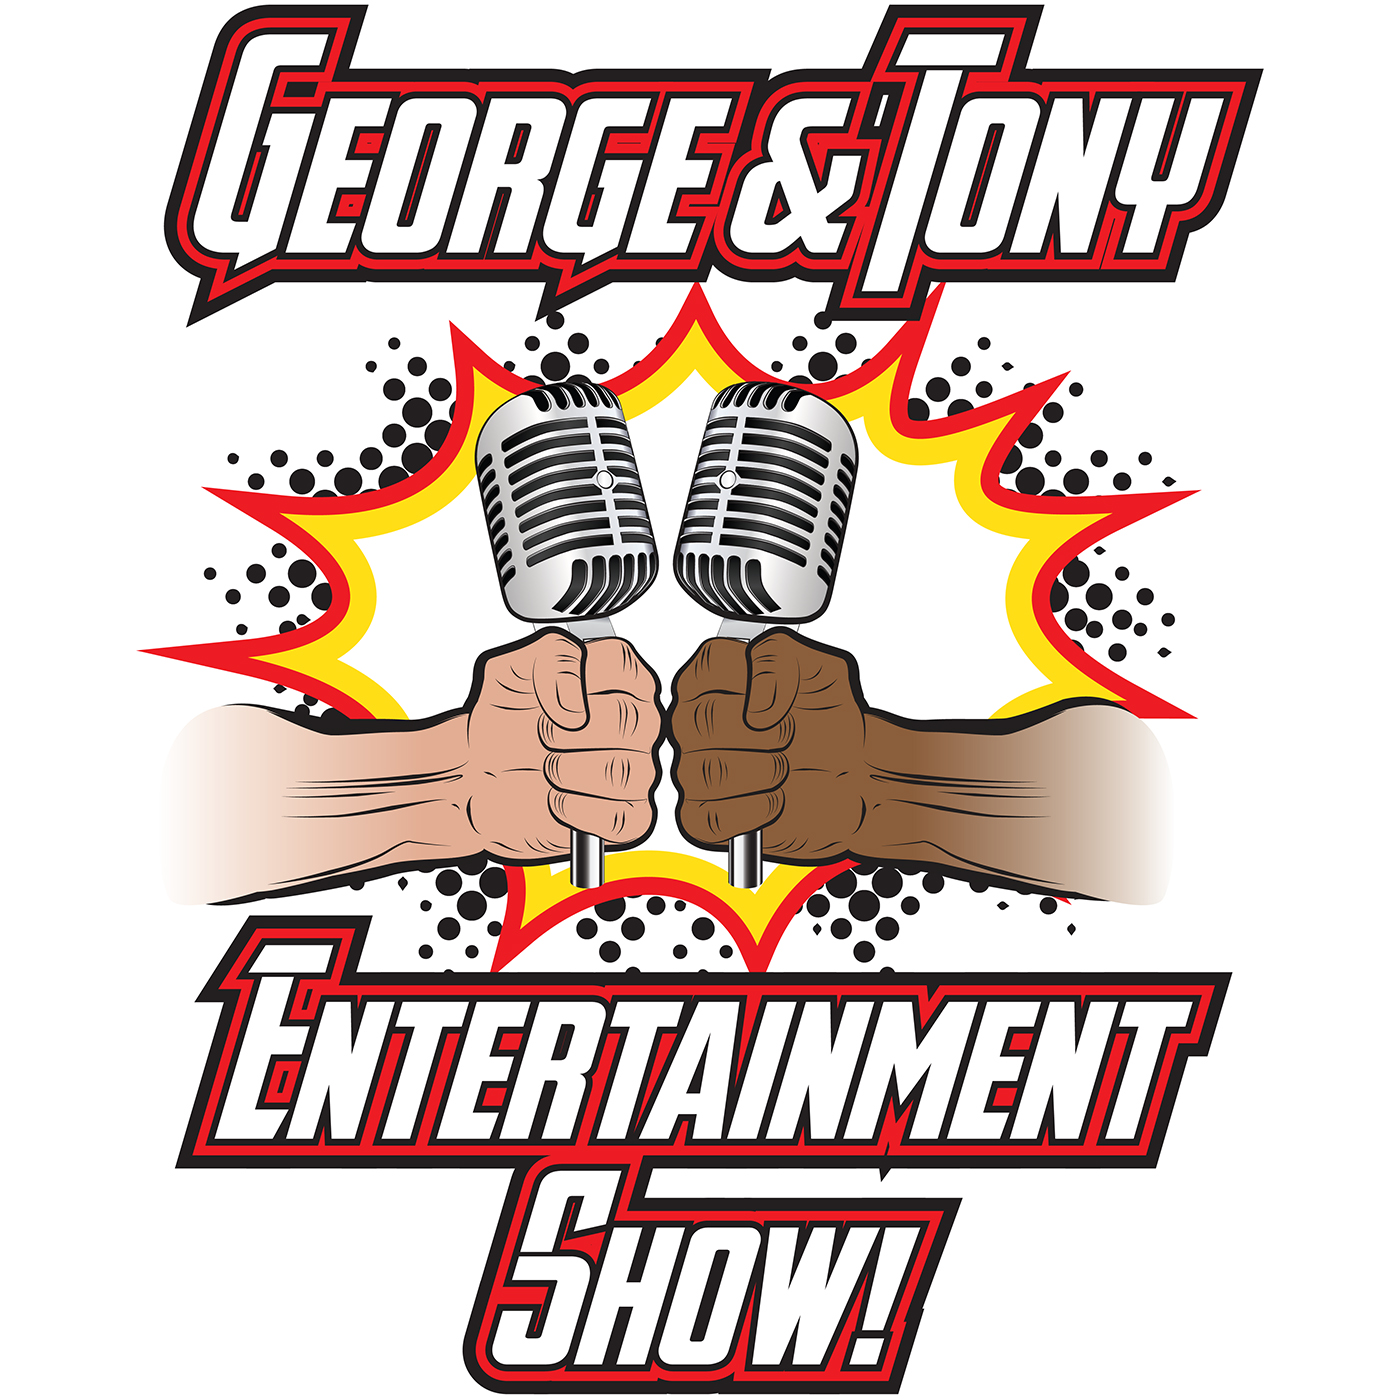 George and Tony Entertainment Show #89